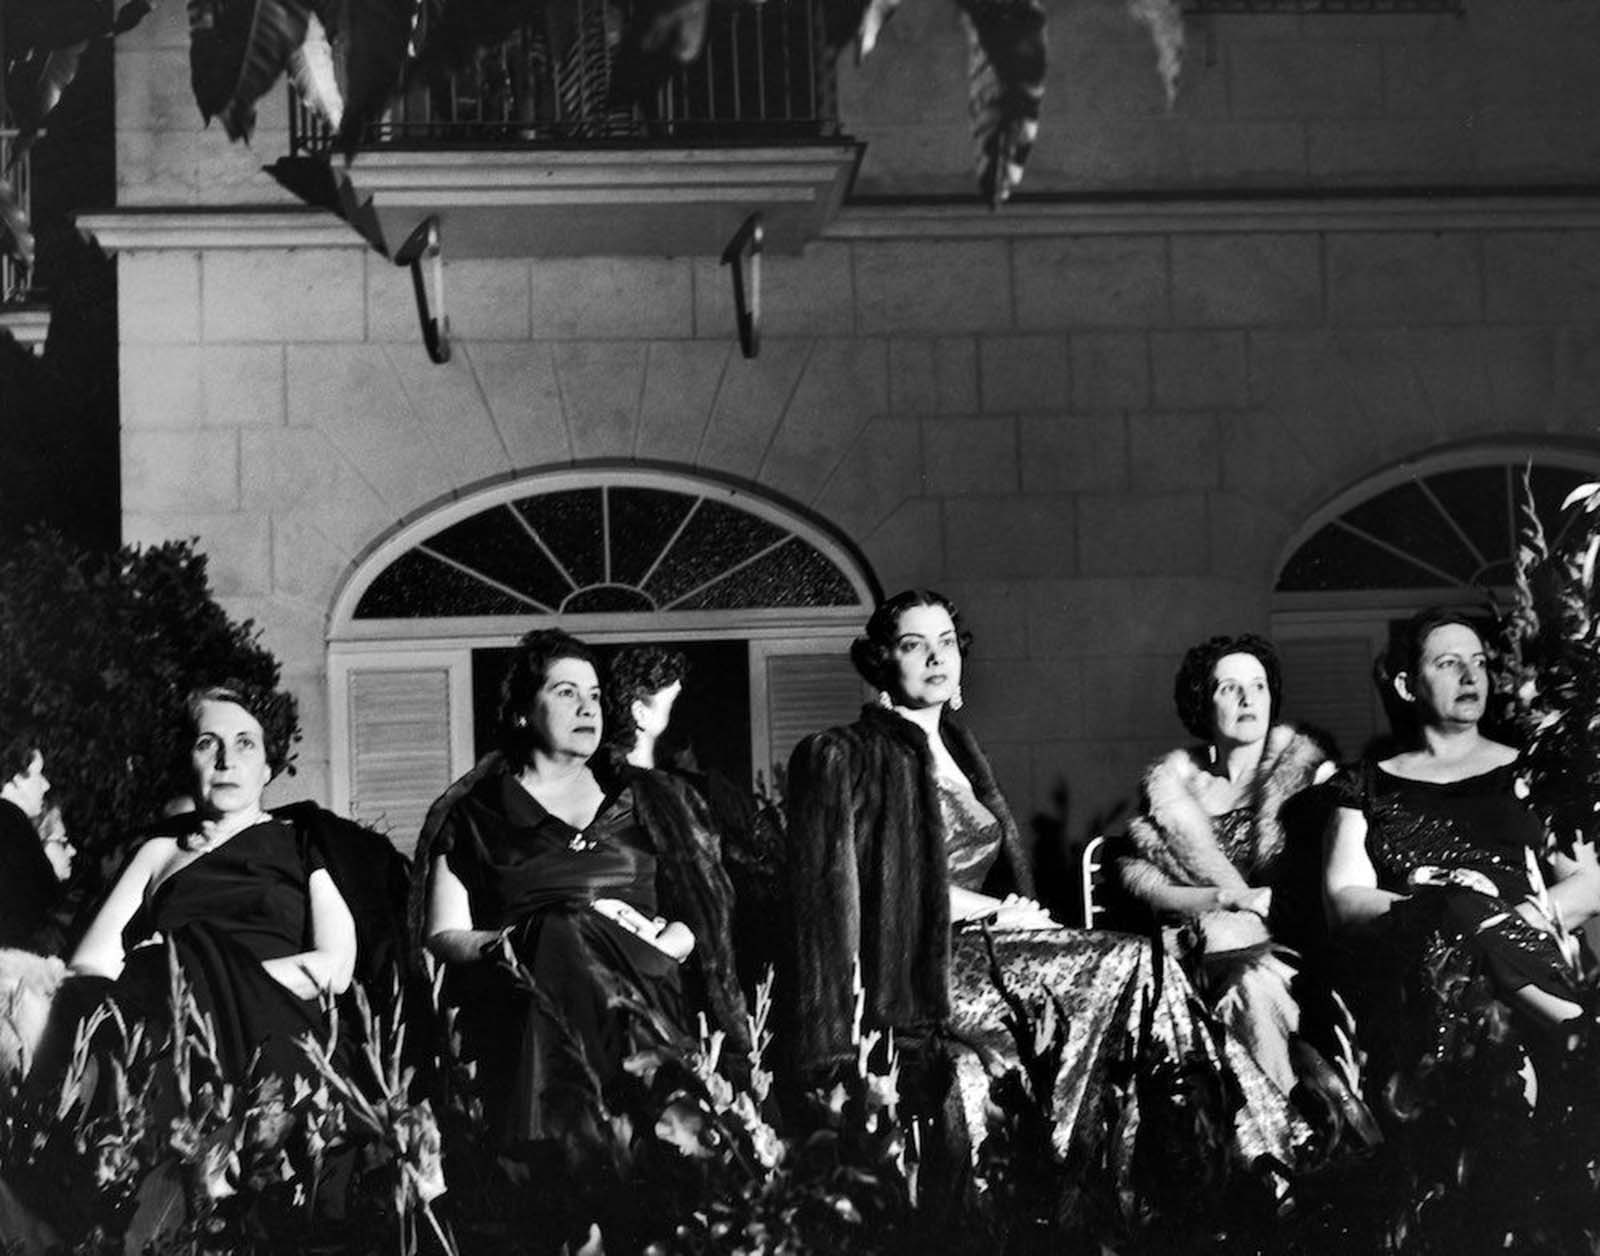 A party in Havana where the mothers chaperone their unmarried daughters.  c. 1950.